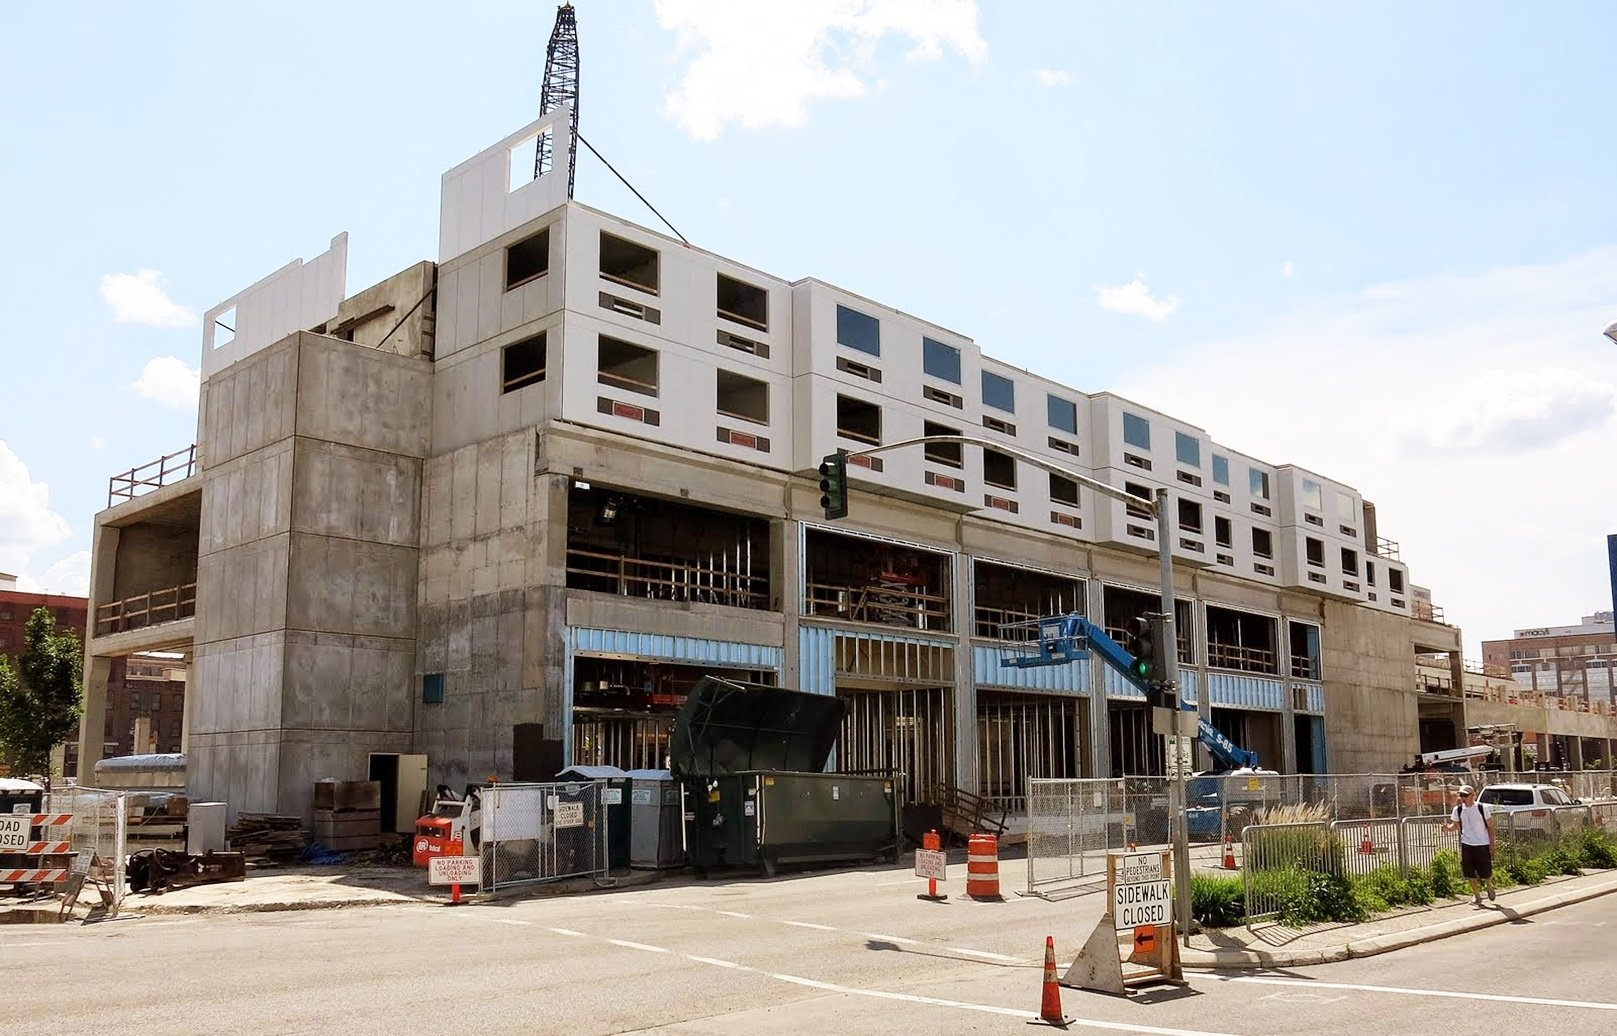 ConventionGrandHotelConstruction-web.jpg